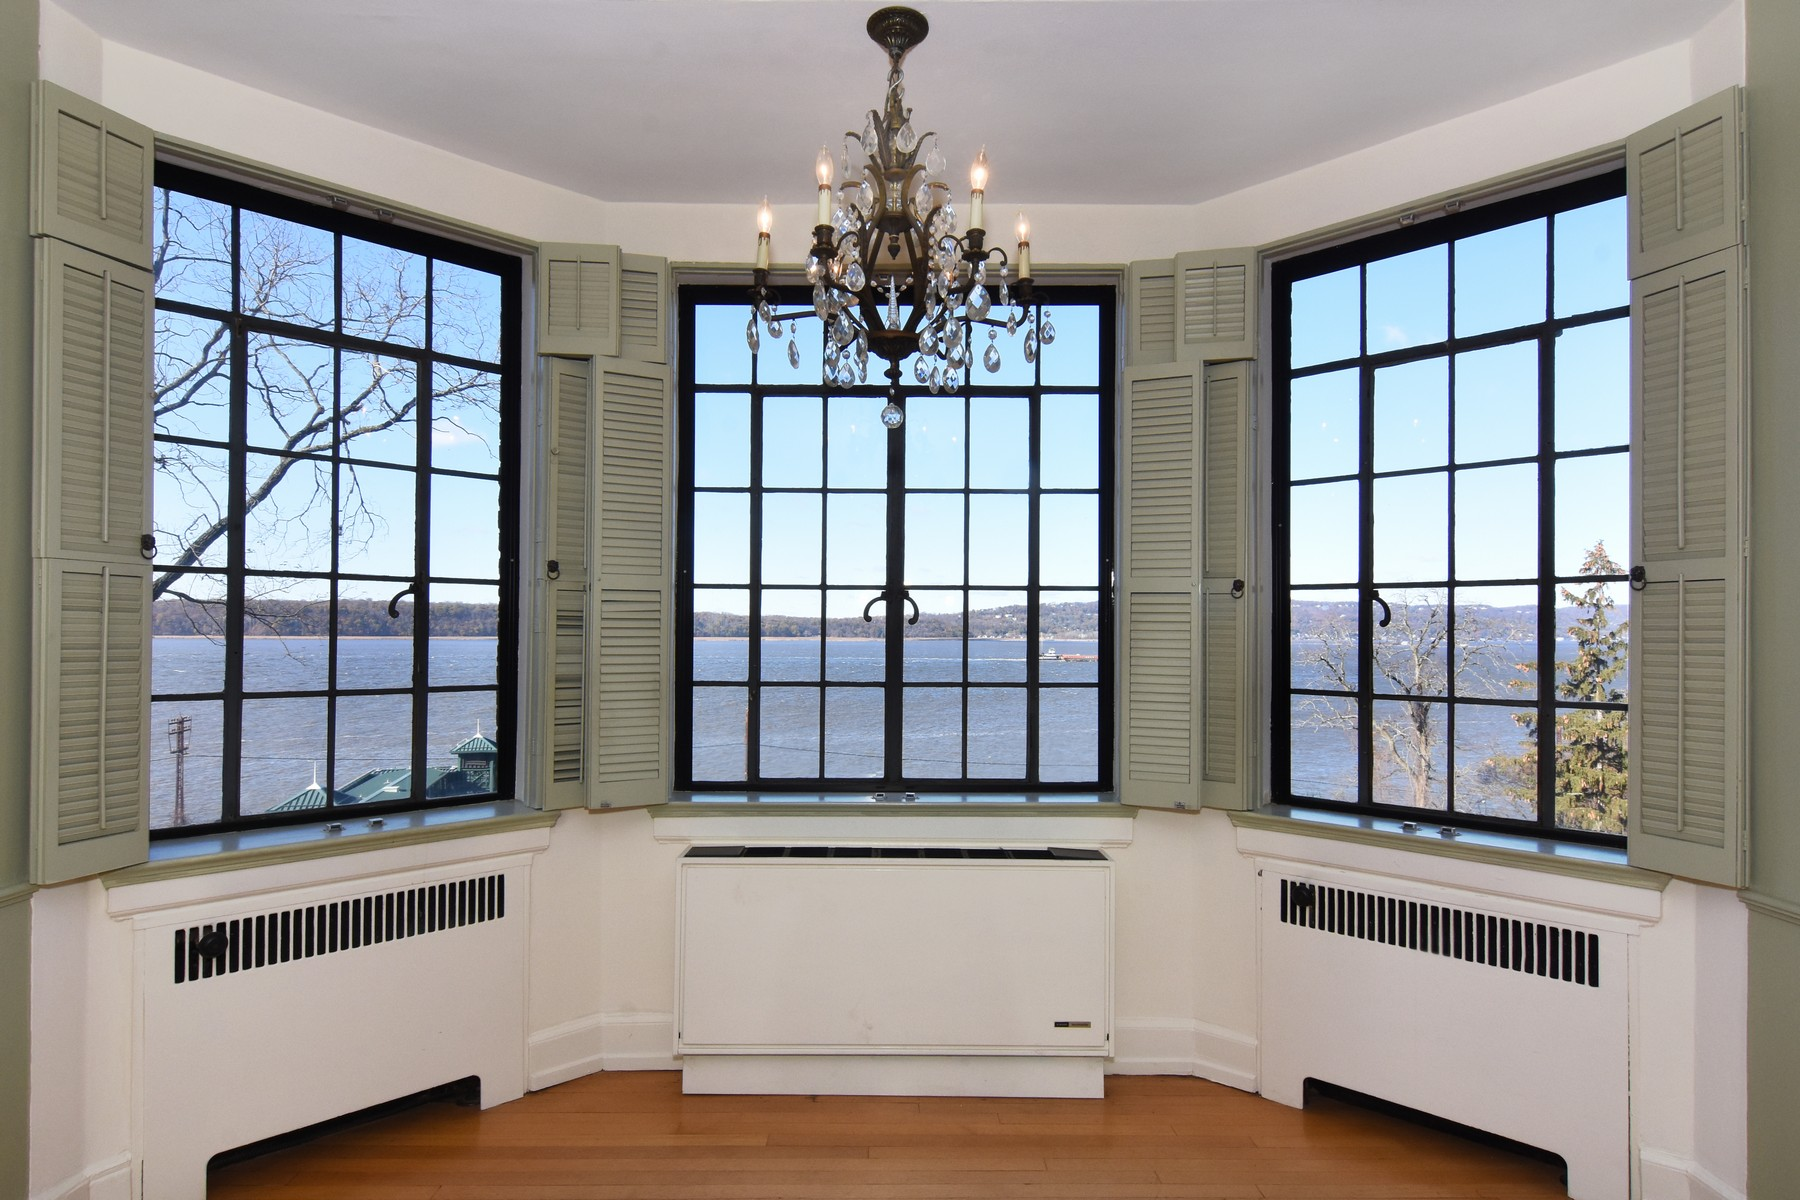 Co-op Properties for Sale at Luxurious Hudson House Unit 100 Ardsley Avenue W 4G Irvington, New York 10533 United States